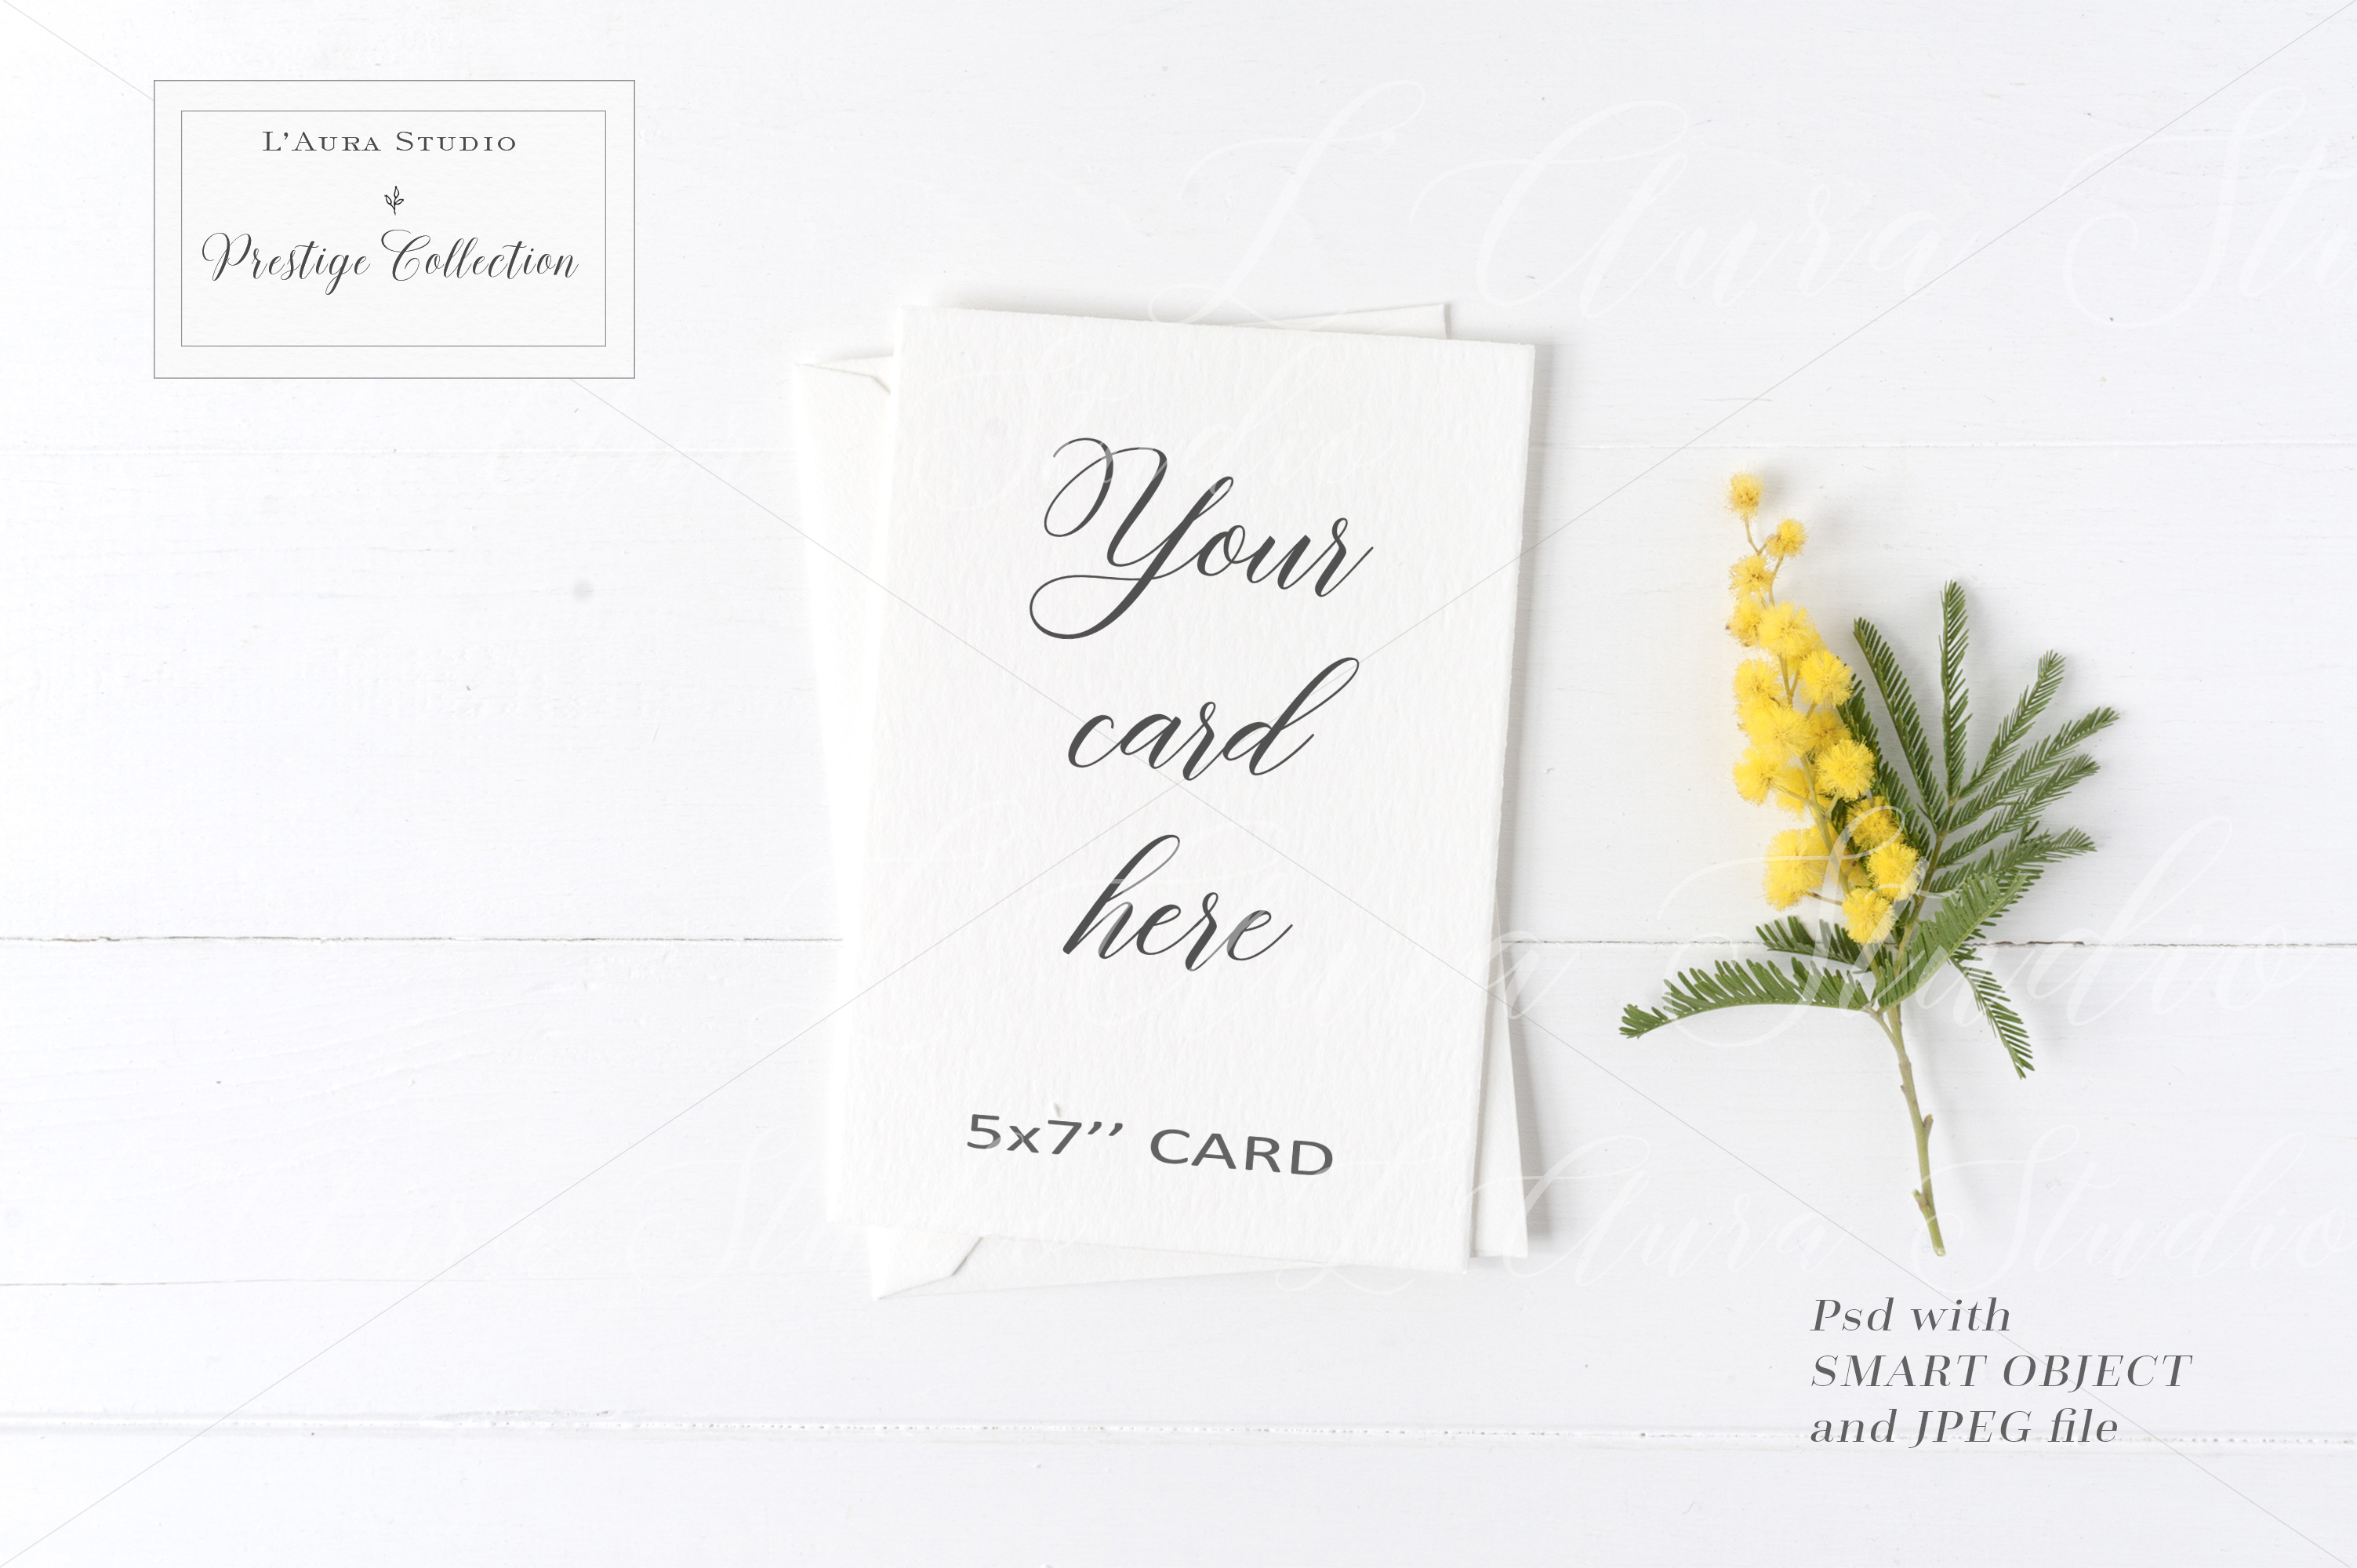 Floral 5x7 Card Mockup - crd229 example image 1